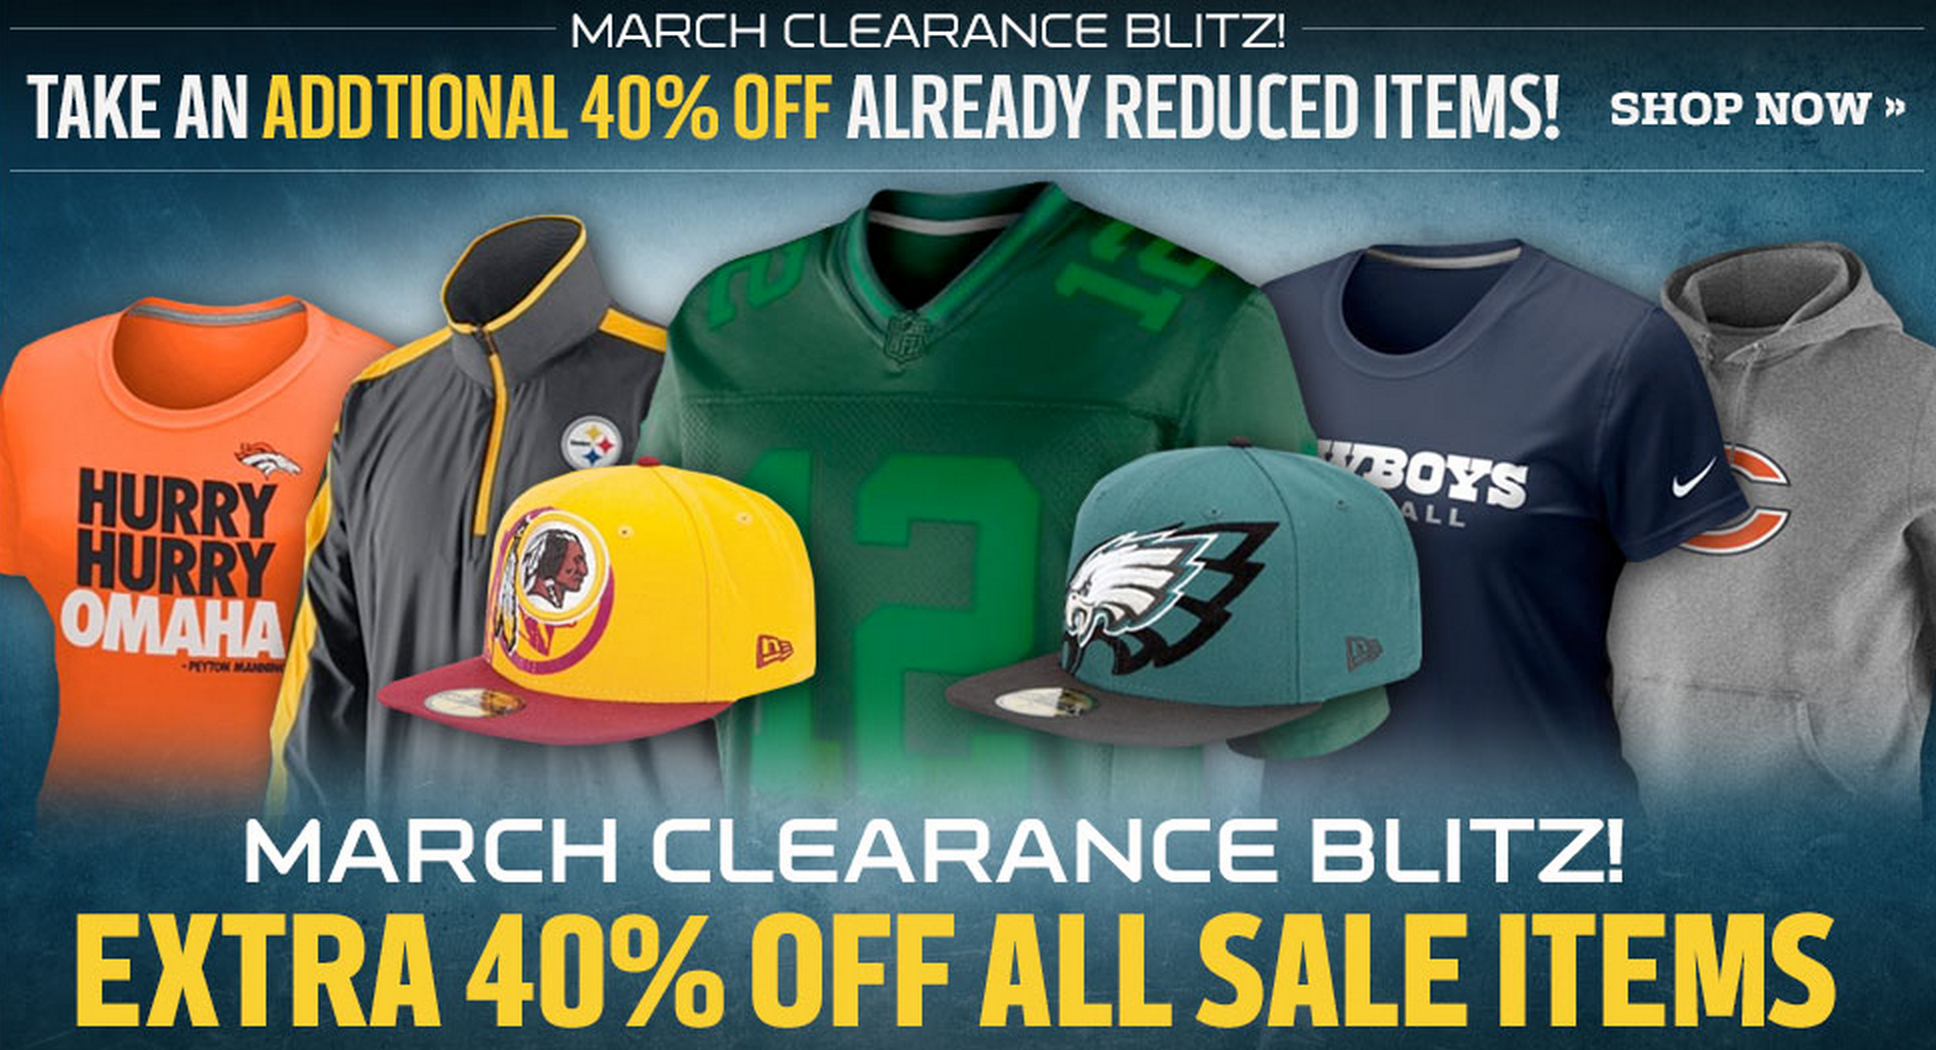 About NFL Shop hingcess-serp.cf carries the largest assortment of officially licensed NFL gear in the world. It's the number one destination for all 32 NFL franchises and features official NFL clothing: including jerseys and tees, home and office decor, and NFL collectibles.